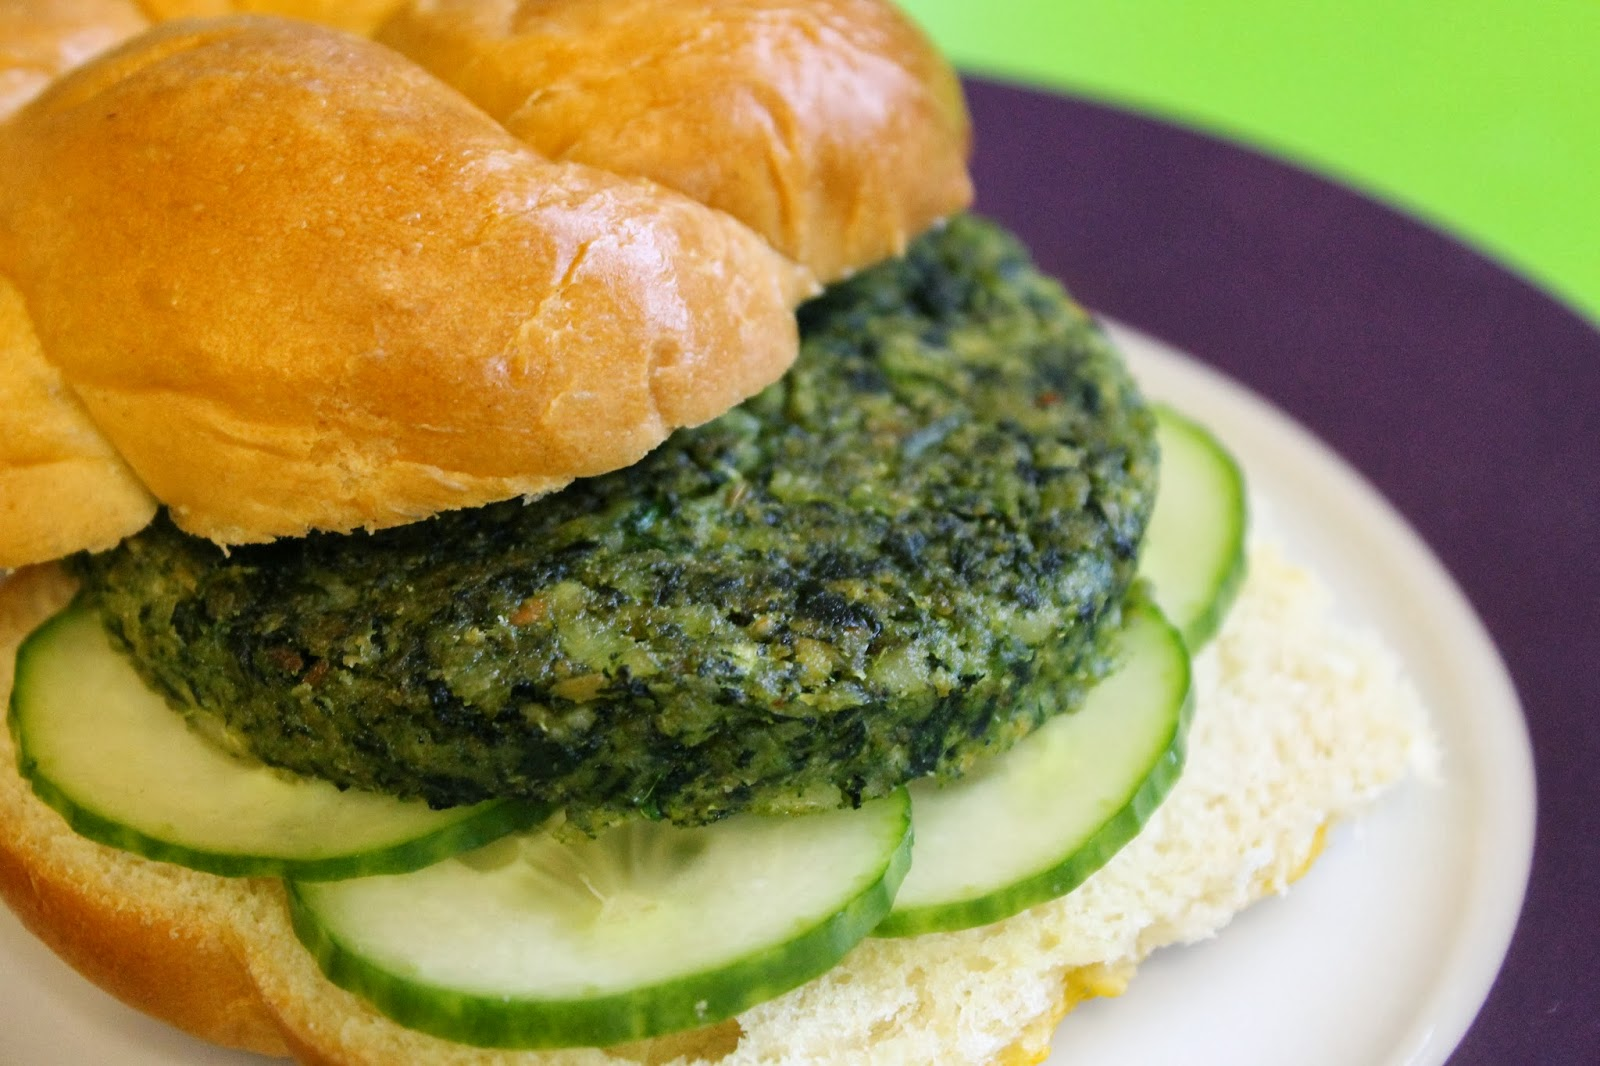 ... Eat Anything With A Face: Spicy Spinach and Chickpea Burgers (Vegan